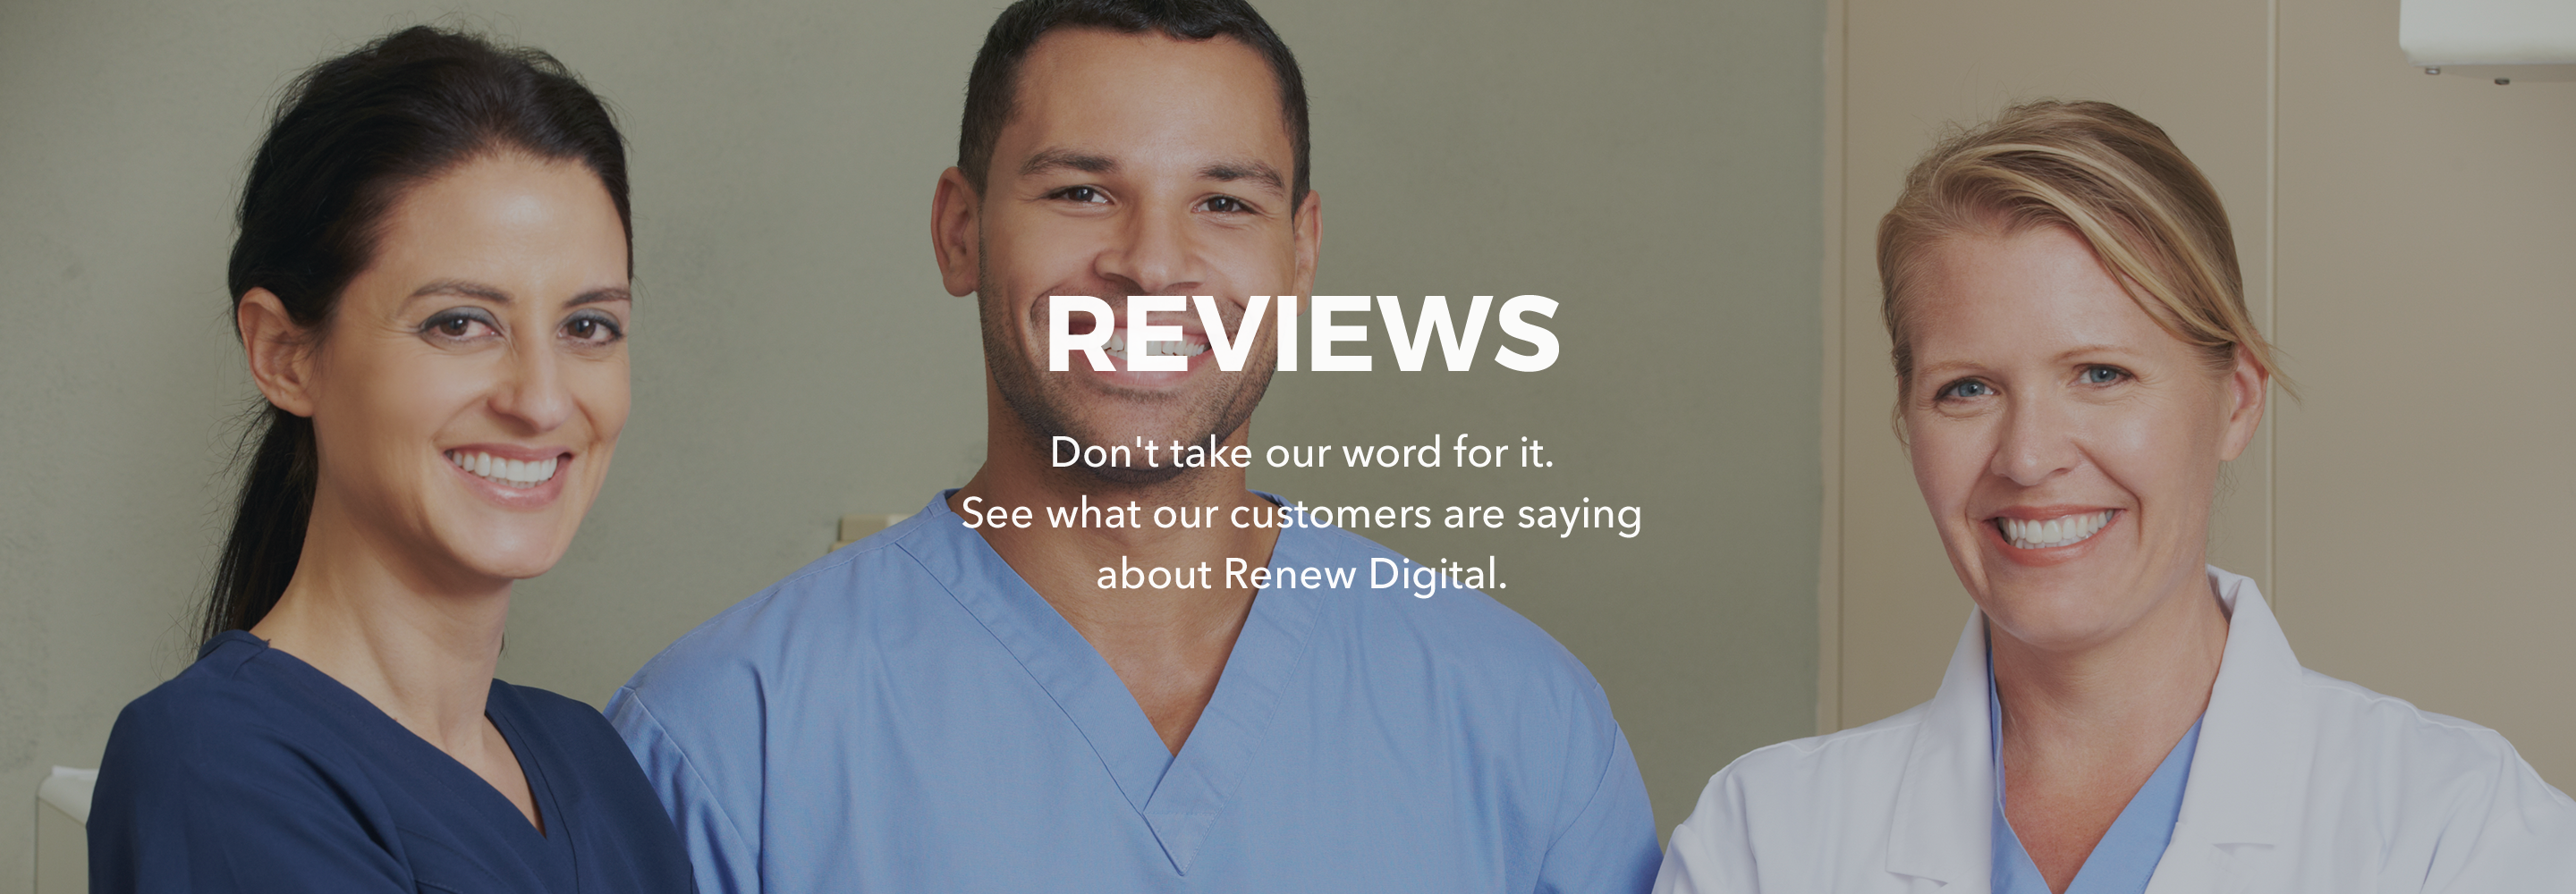 Renew Digital reviews | 3250 Peachtree Corners Cir - Norcross GA